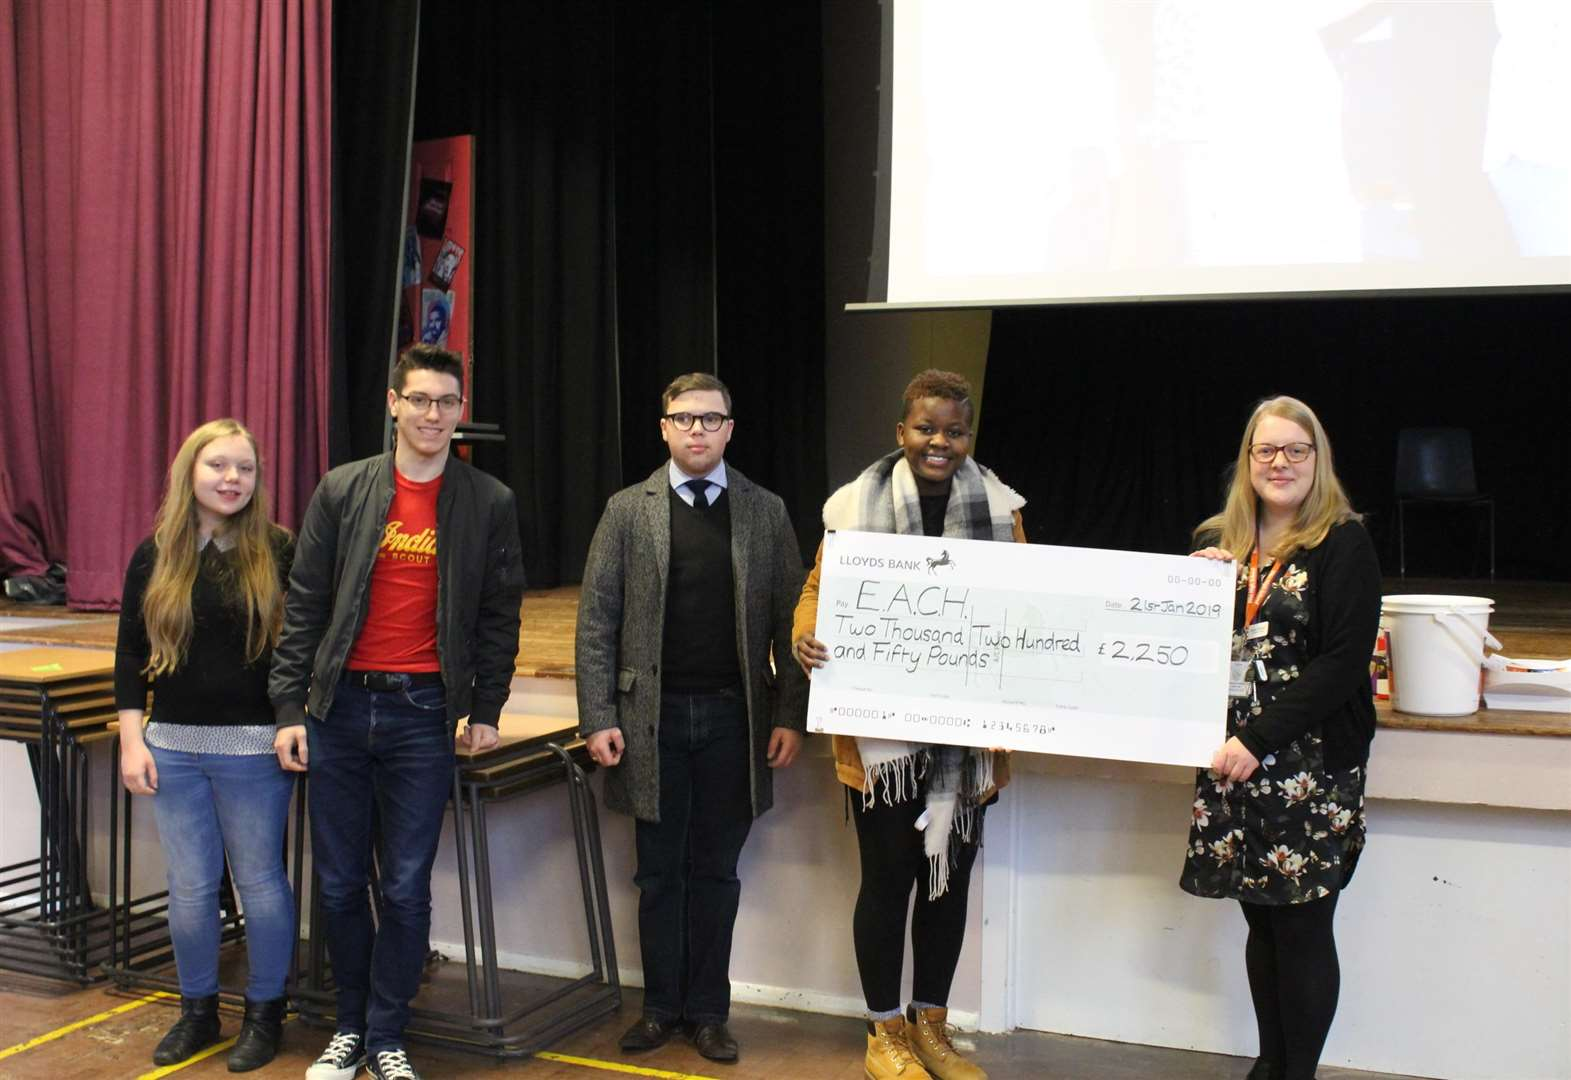 Diss High School's week of events smash £4,500